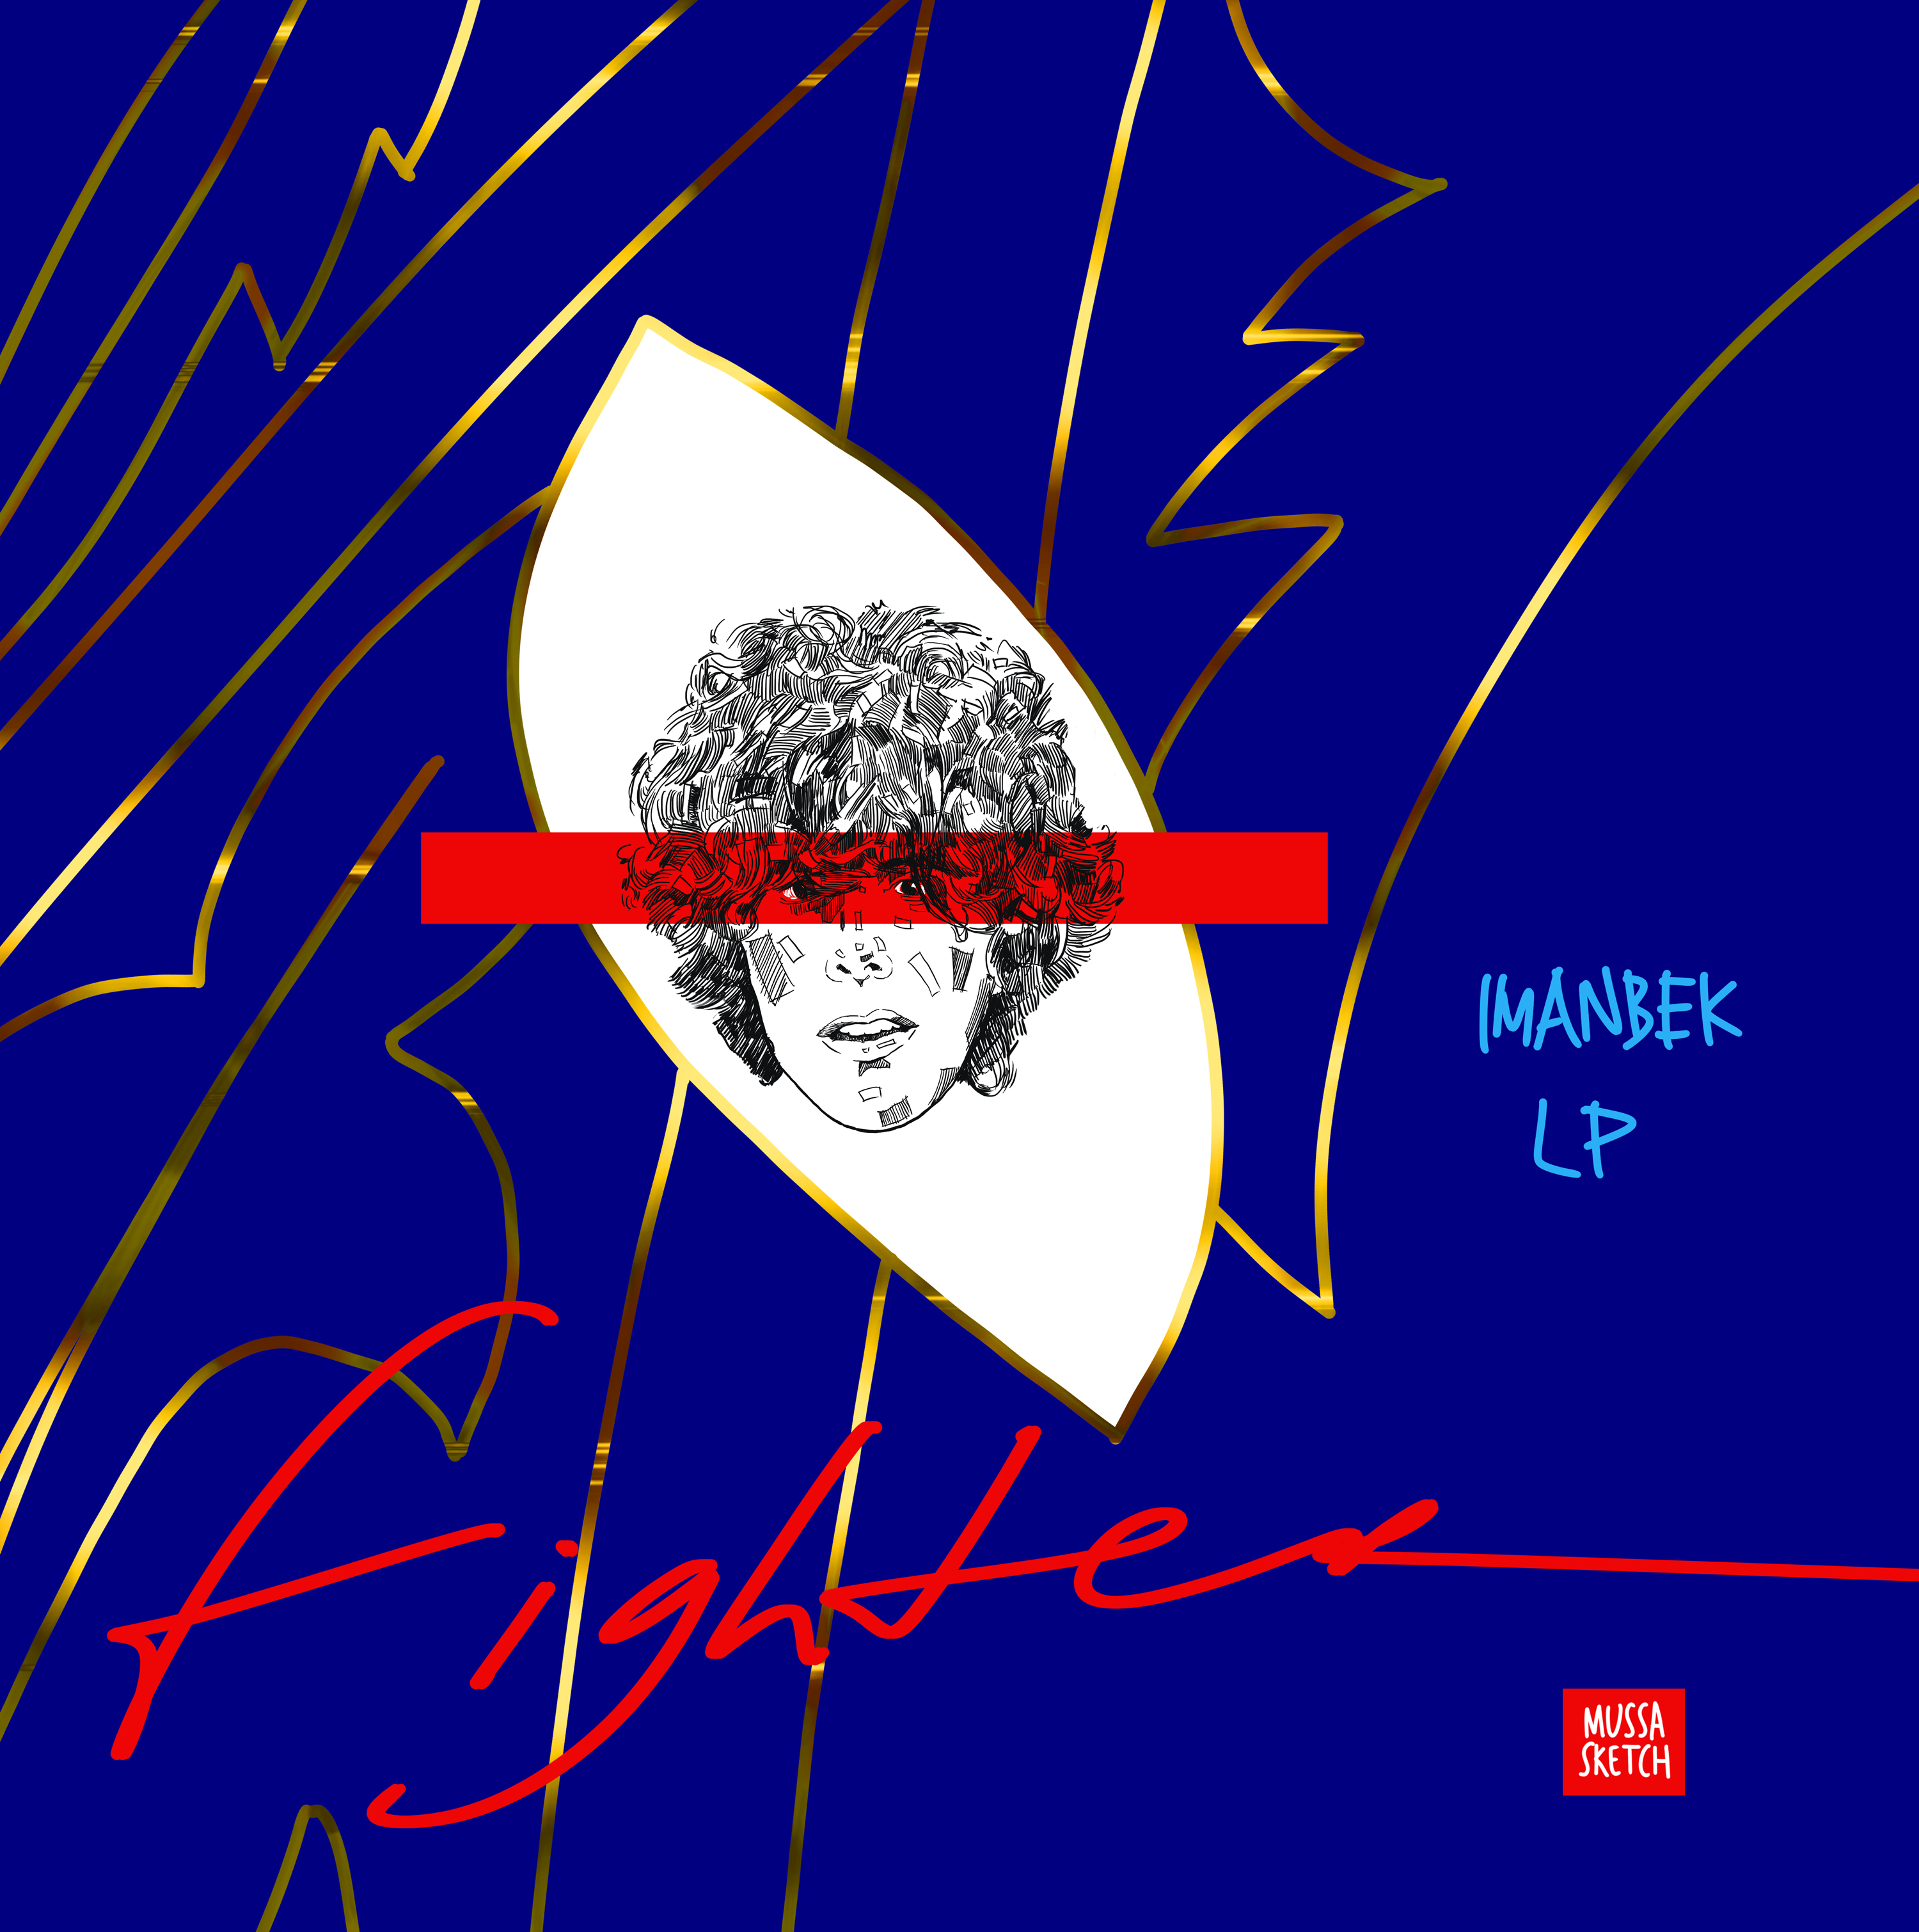 DJ Imanbek and multiple platinum selling singer-songwriter LP release their first single together, 'Fighter'.